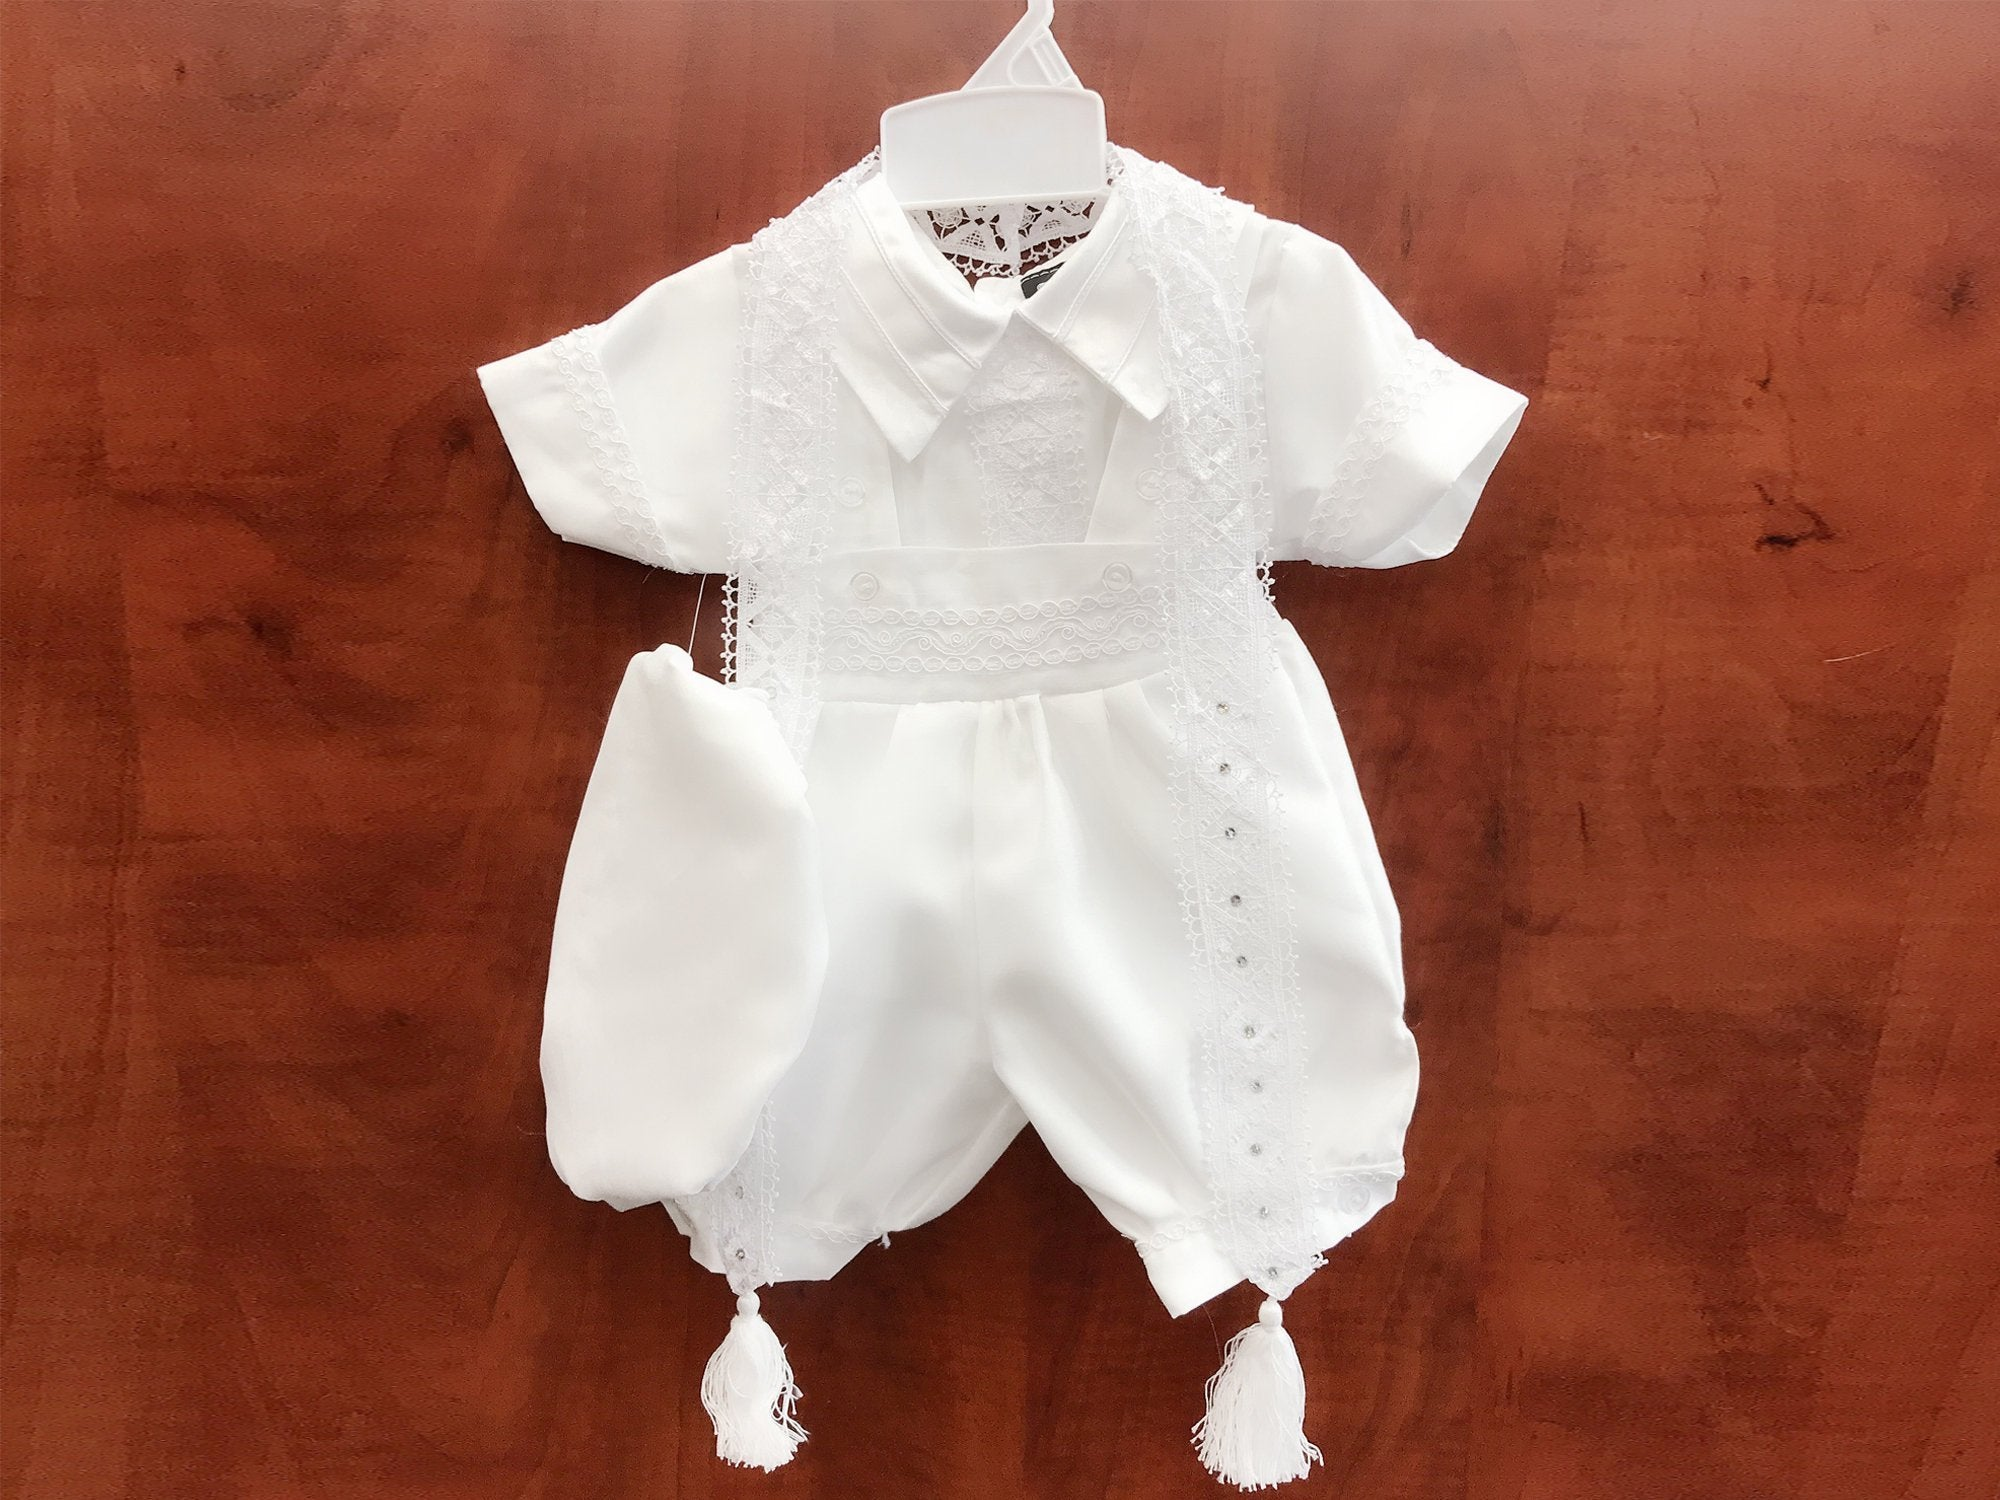 Small to 4T Boys  Infant Toddler Christening Baptism White Outfit S Sz